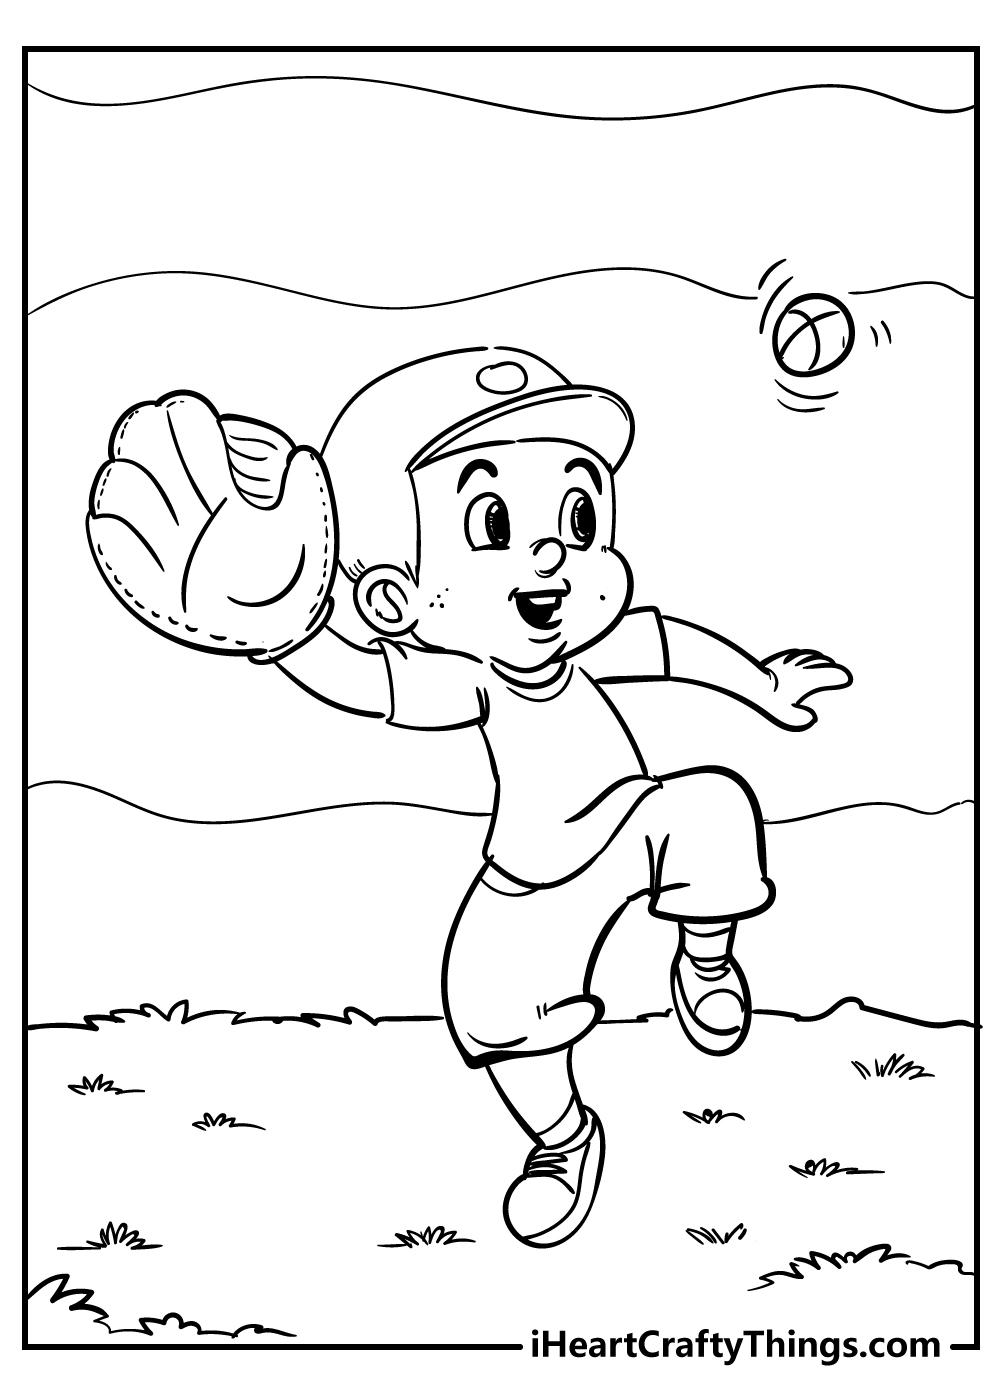 baseball coloring images for boys free download